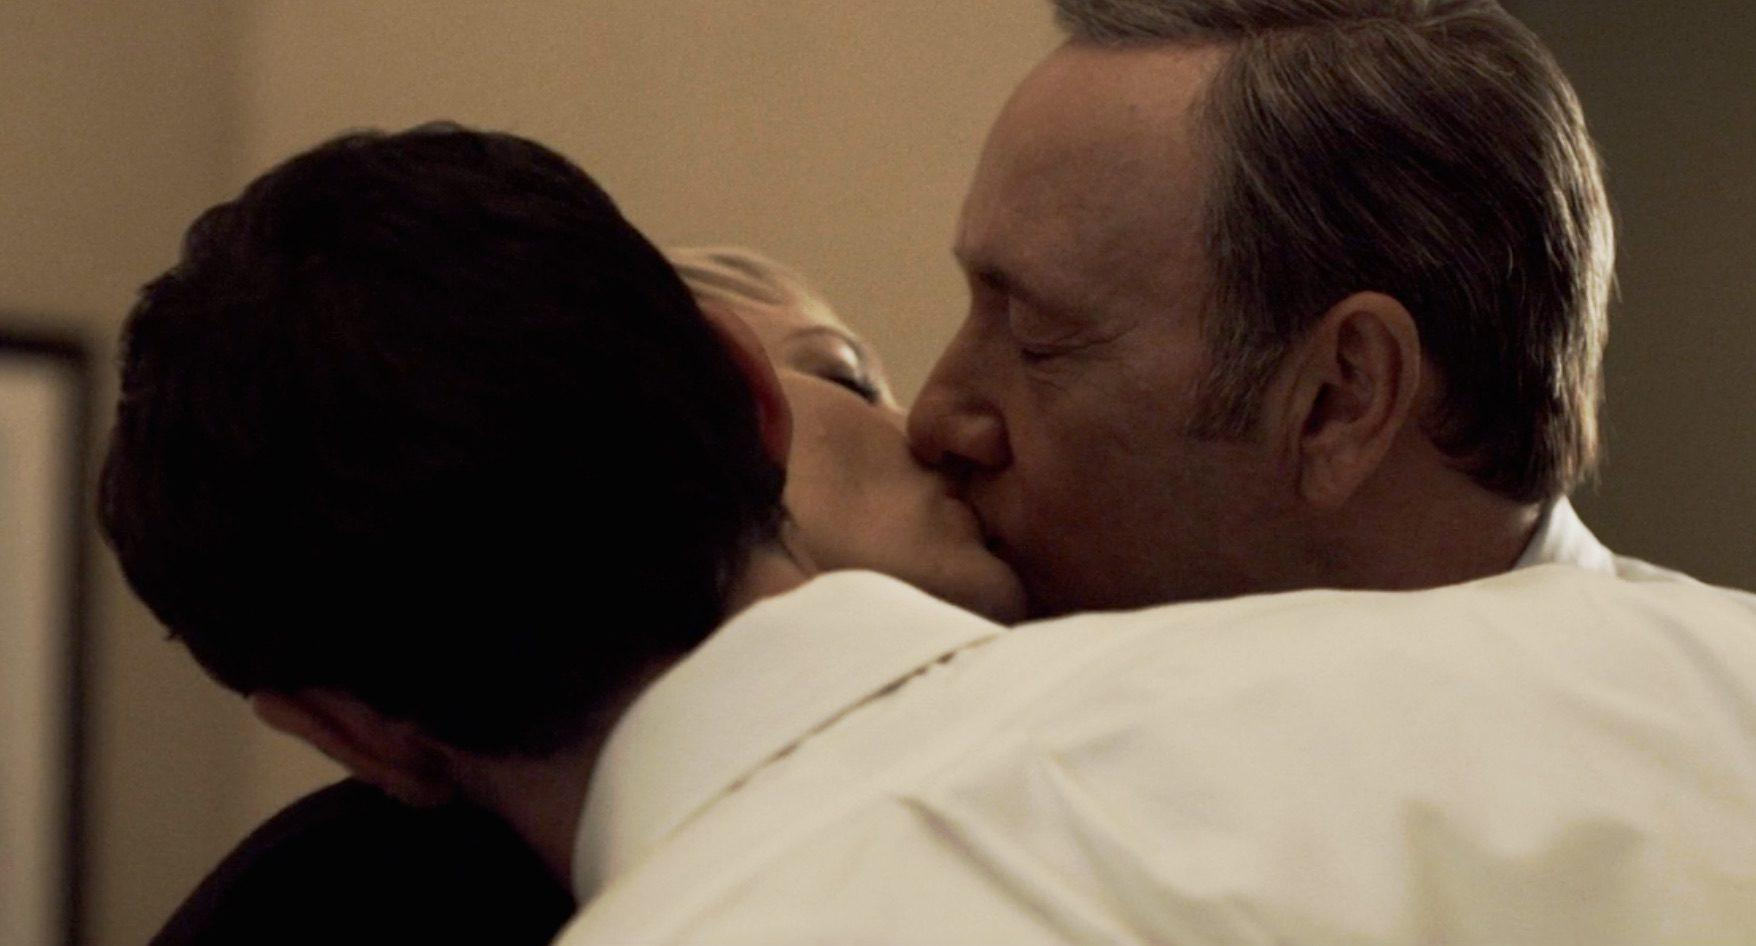 The surreal story of kevin spacey